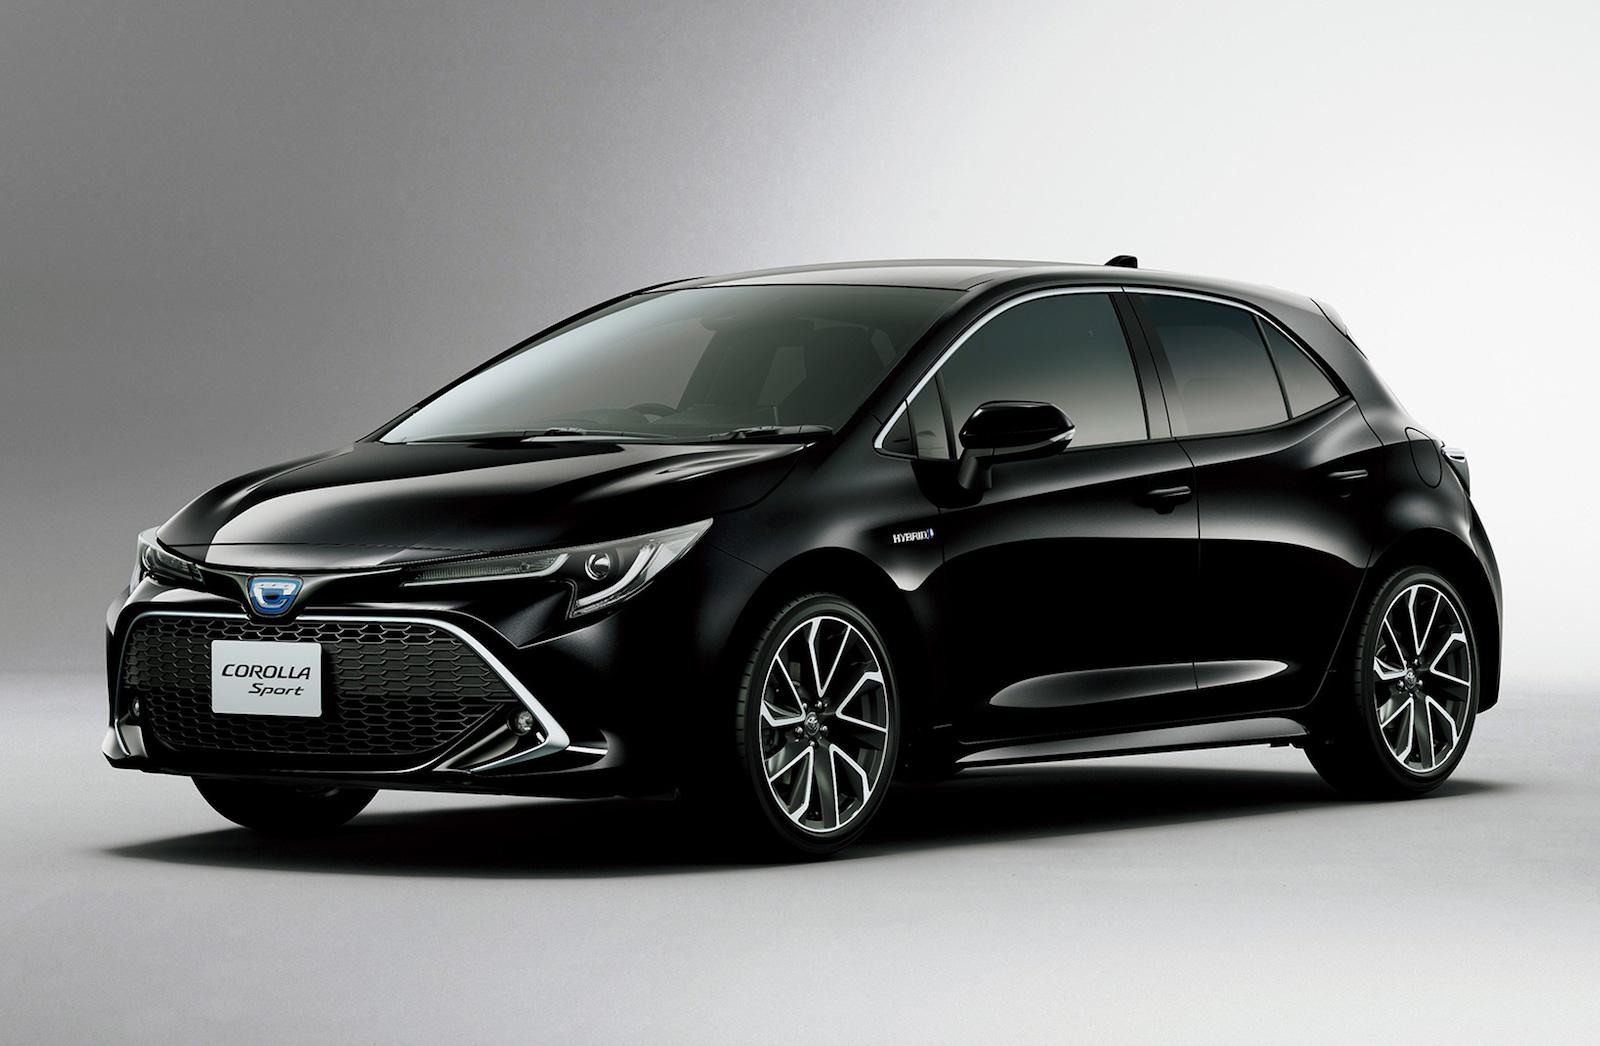 jdm spec 2019 toyota corolla sport gets turbo option. Black Bedroom Furniture Sets. Home Design Ideas